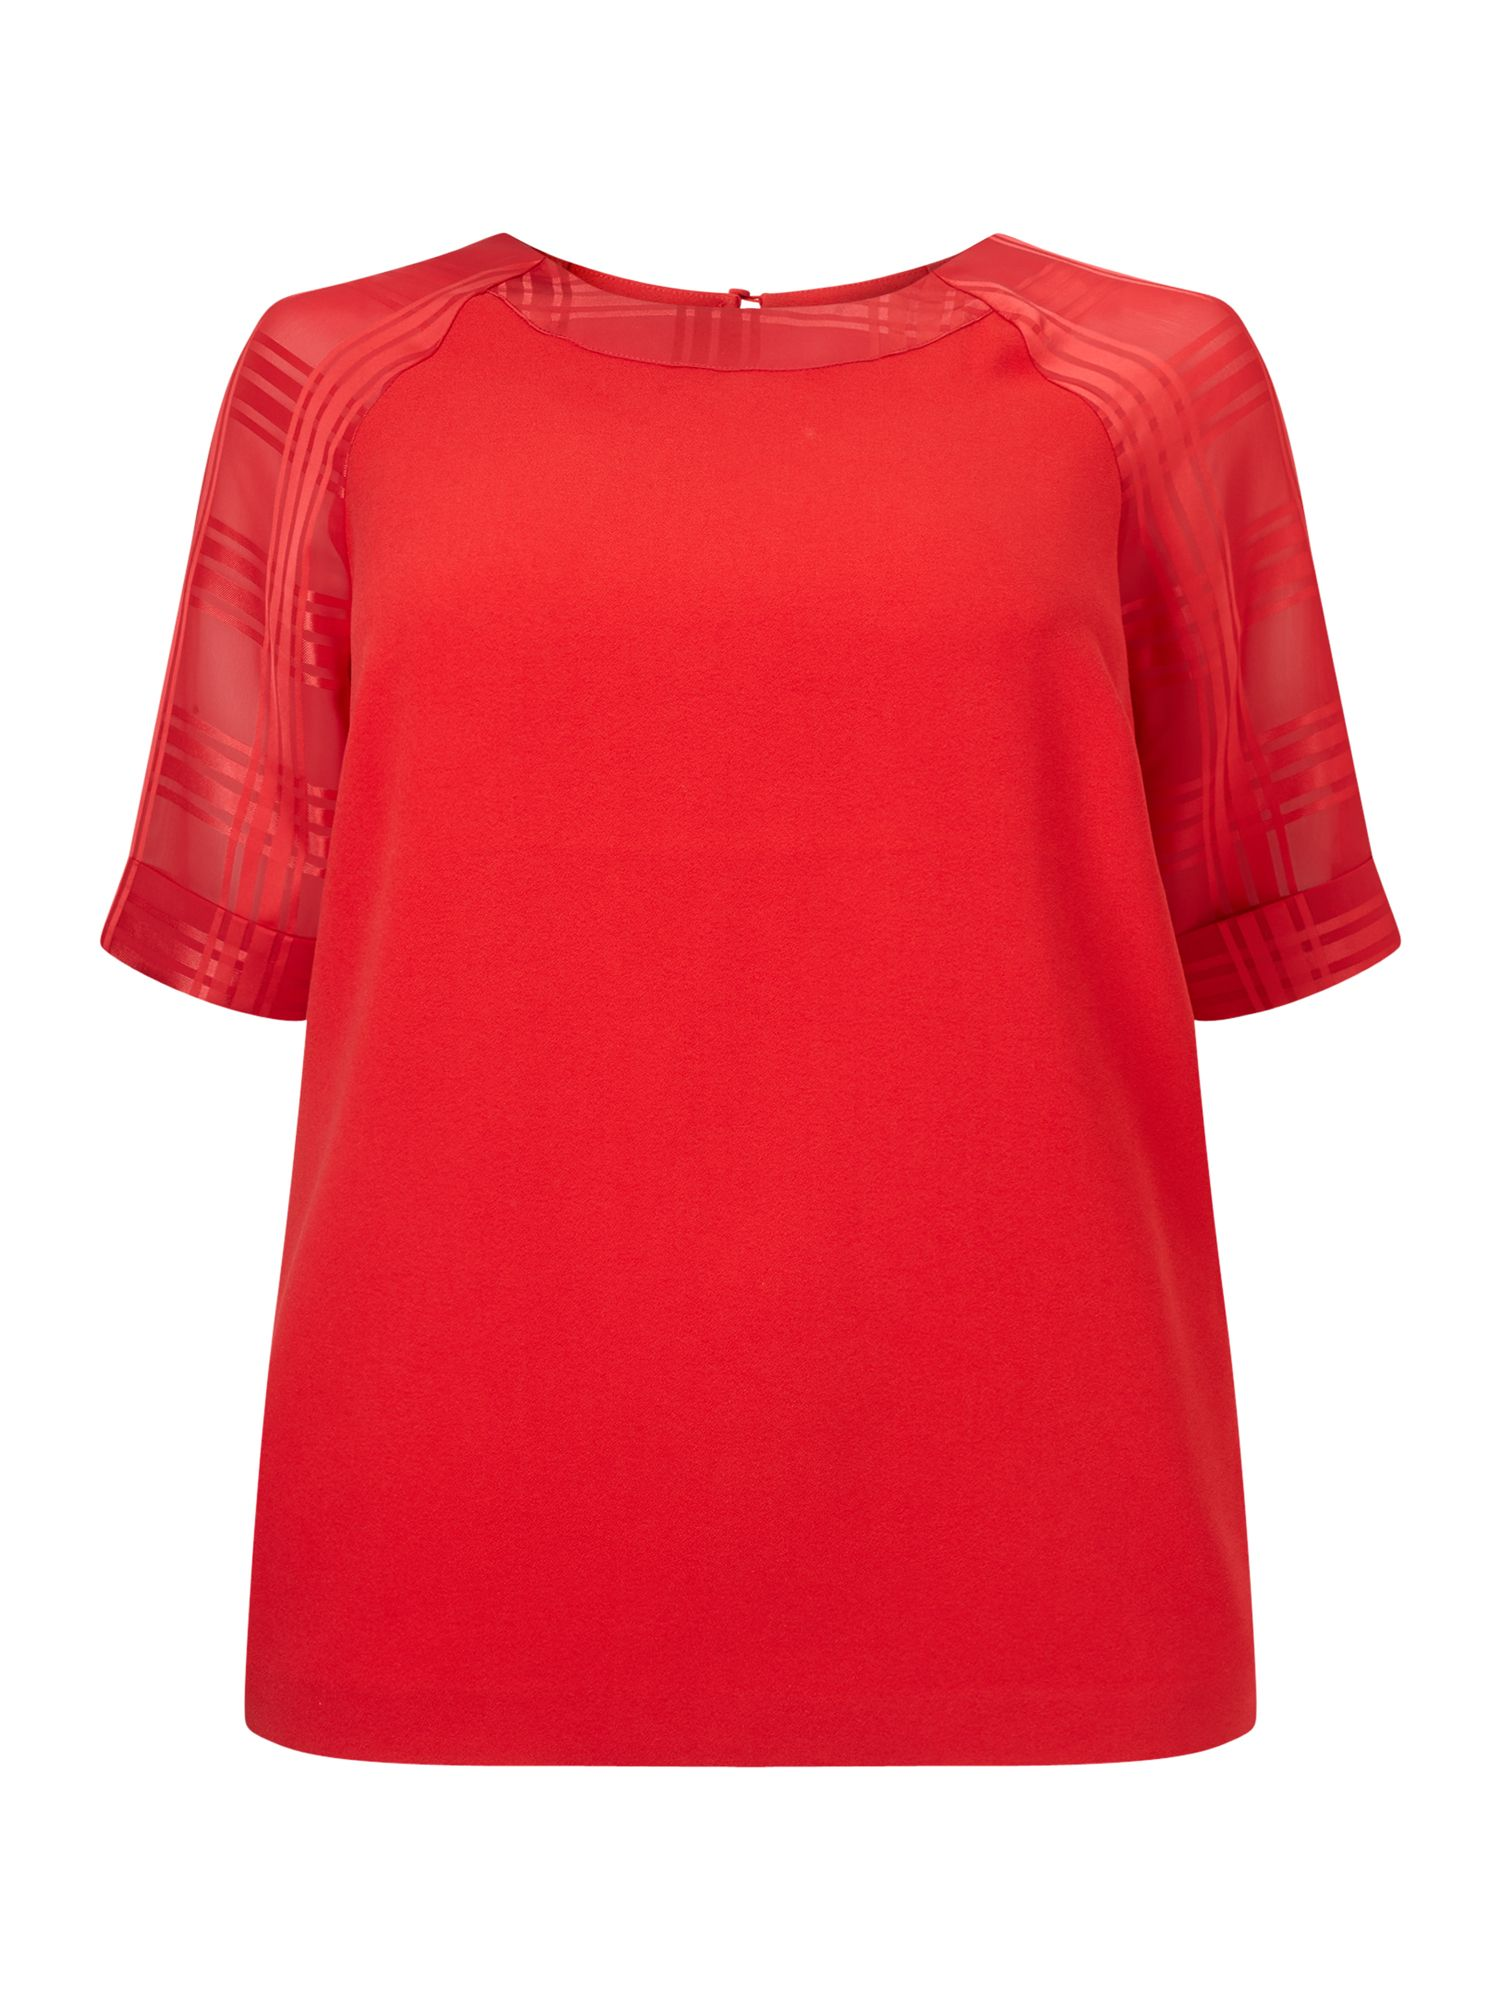 Studio 8 Lulu Blouse, Red